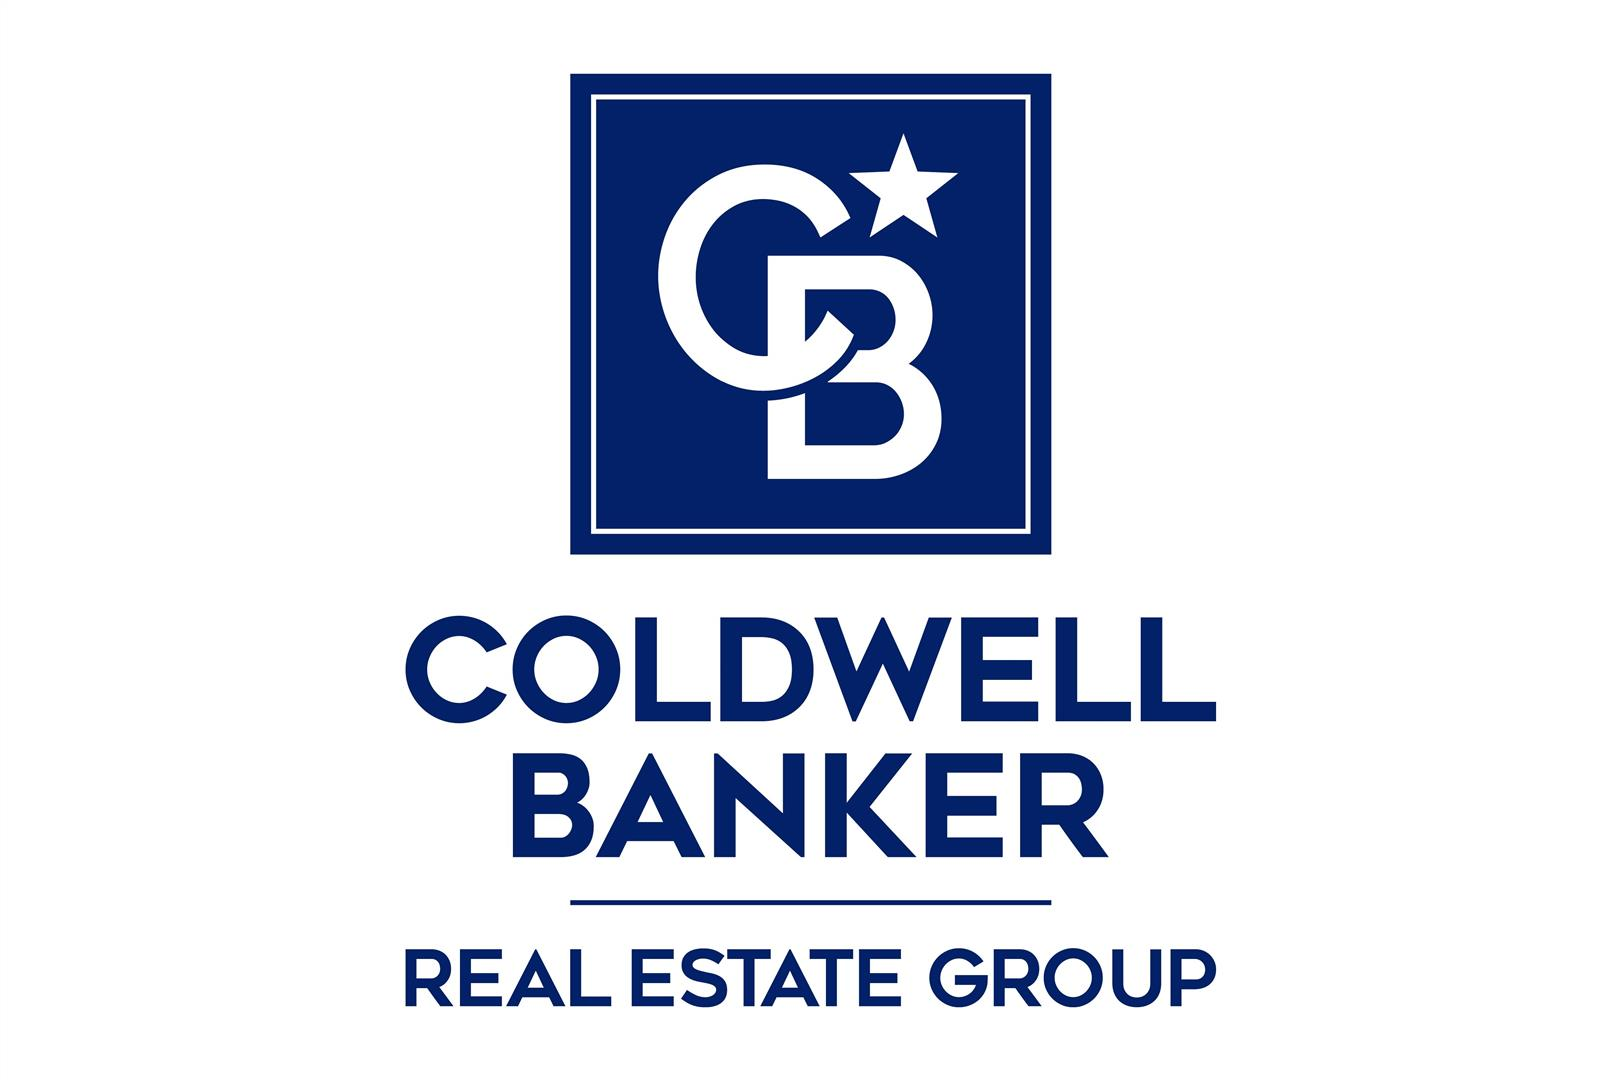 Coldwell Banker Real Estate Group - Angola